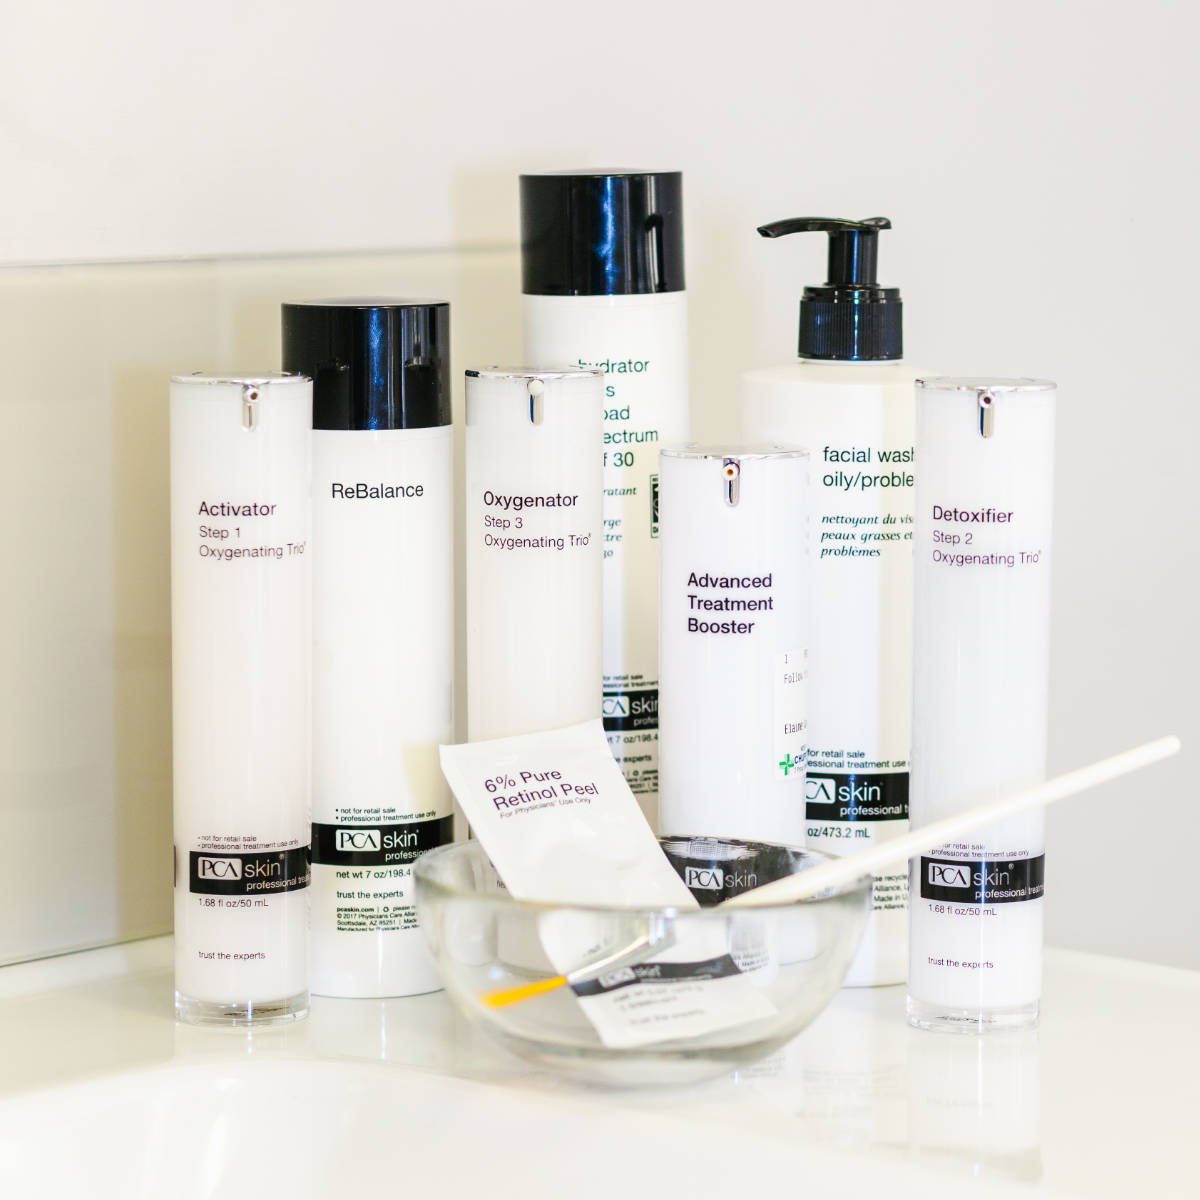 PCA peel products stocked at Waterhouse Young Clinic, London